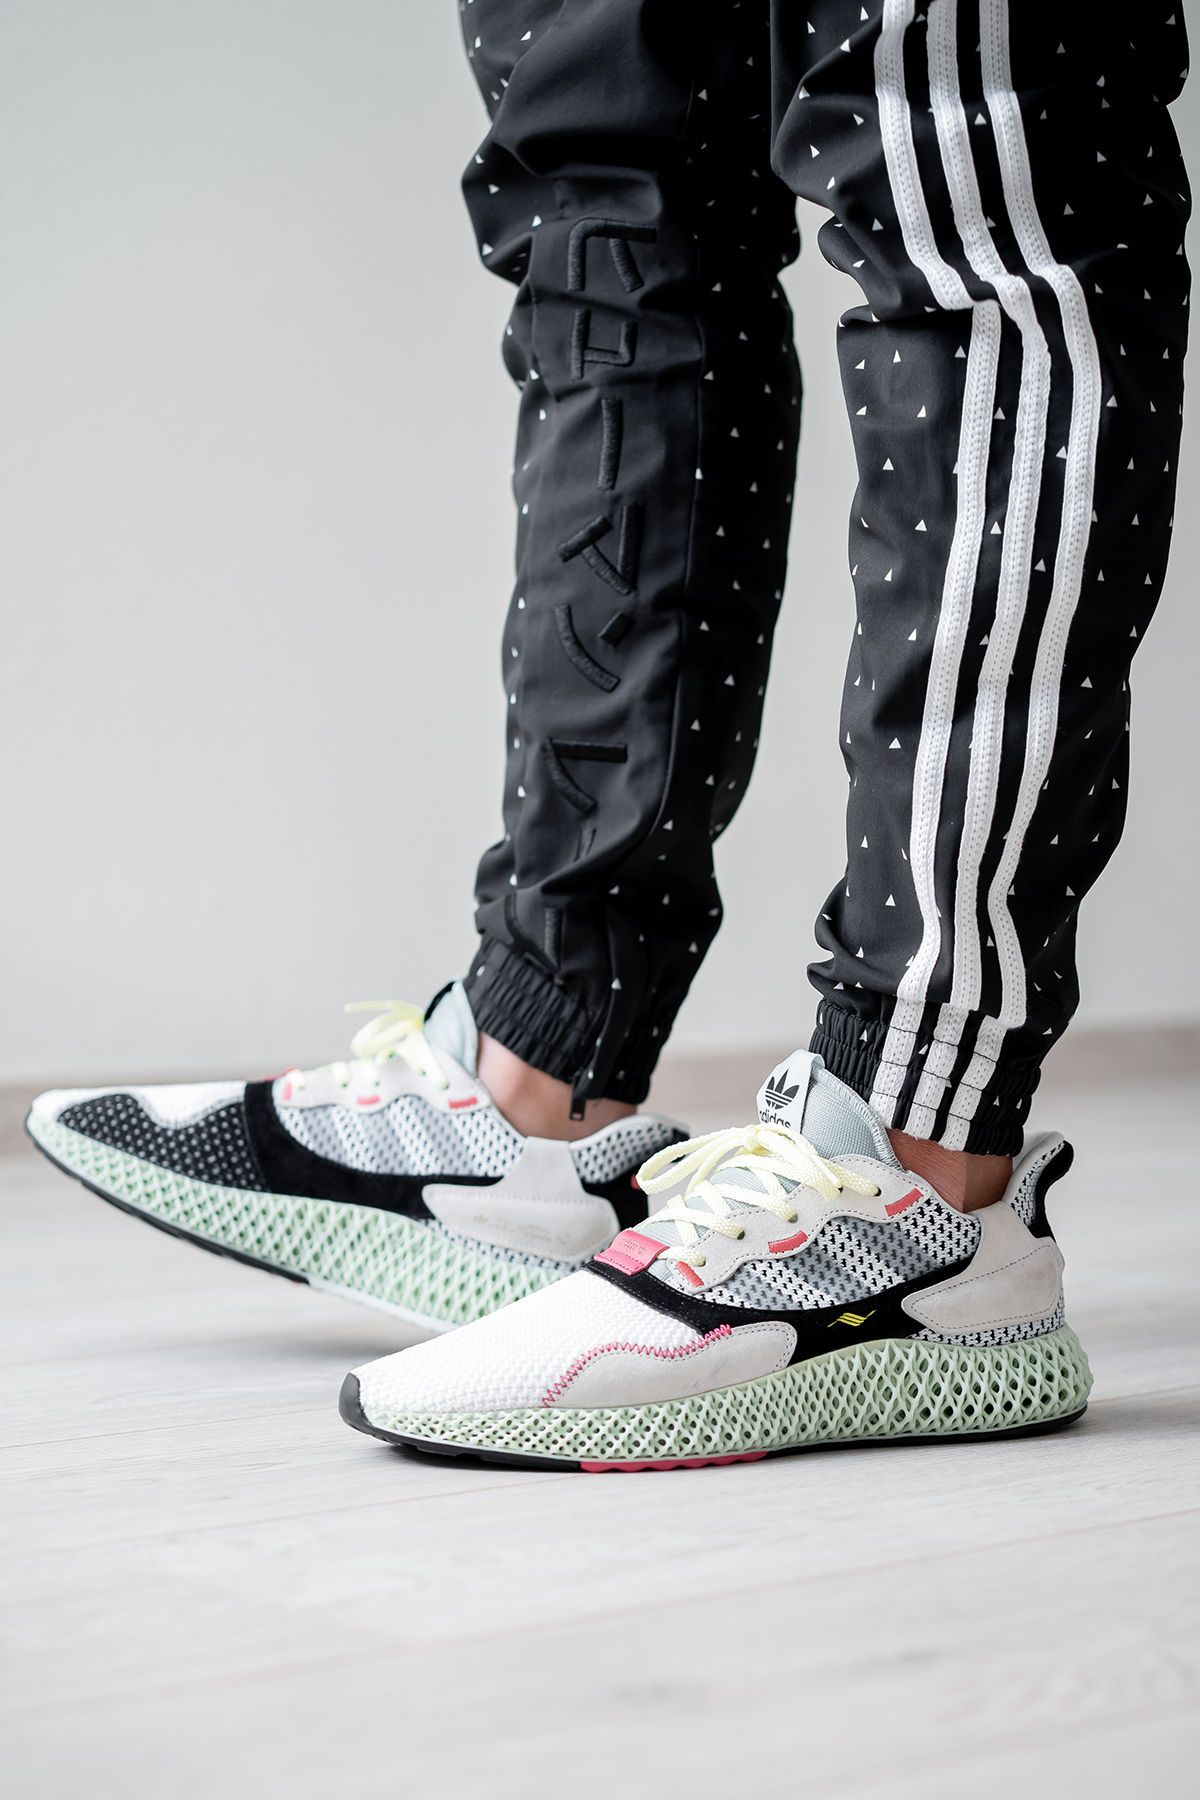 3294f9a29 adidas zx 4000 4d sample randy galang futurecraft fall winter 2018 black  tan beige white mesh woven cream B42203 FTWR WHT GREY TWO LINEN GREEN adidas  zx ...